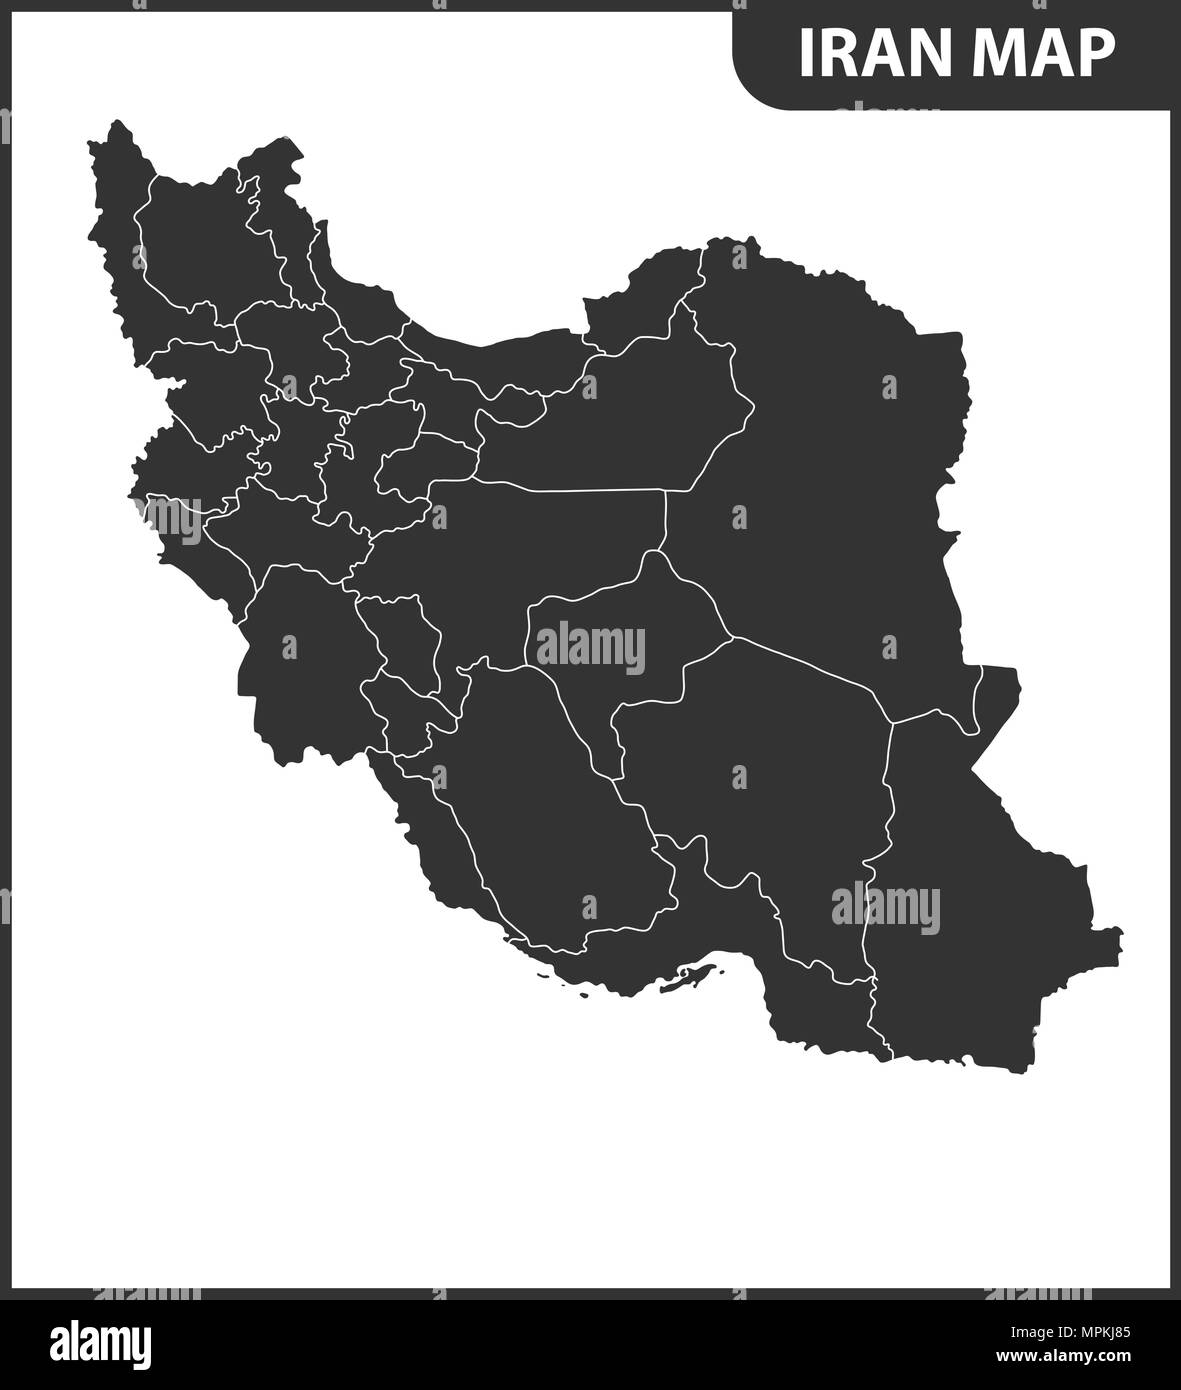 The detailed map of Iran with regions or states. Administrative division. Stock Vector